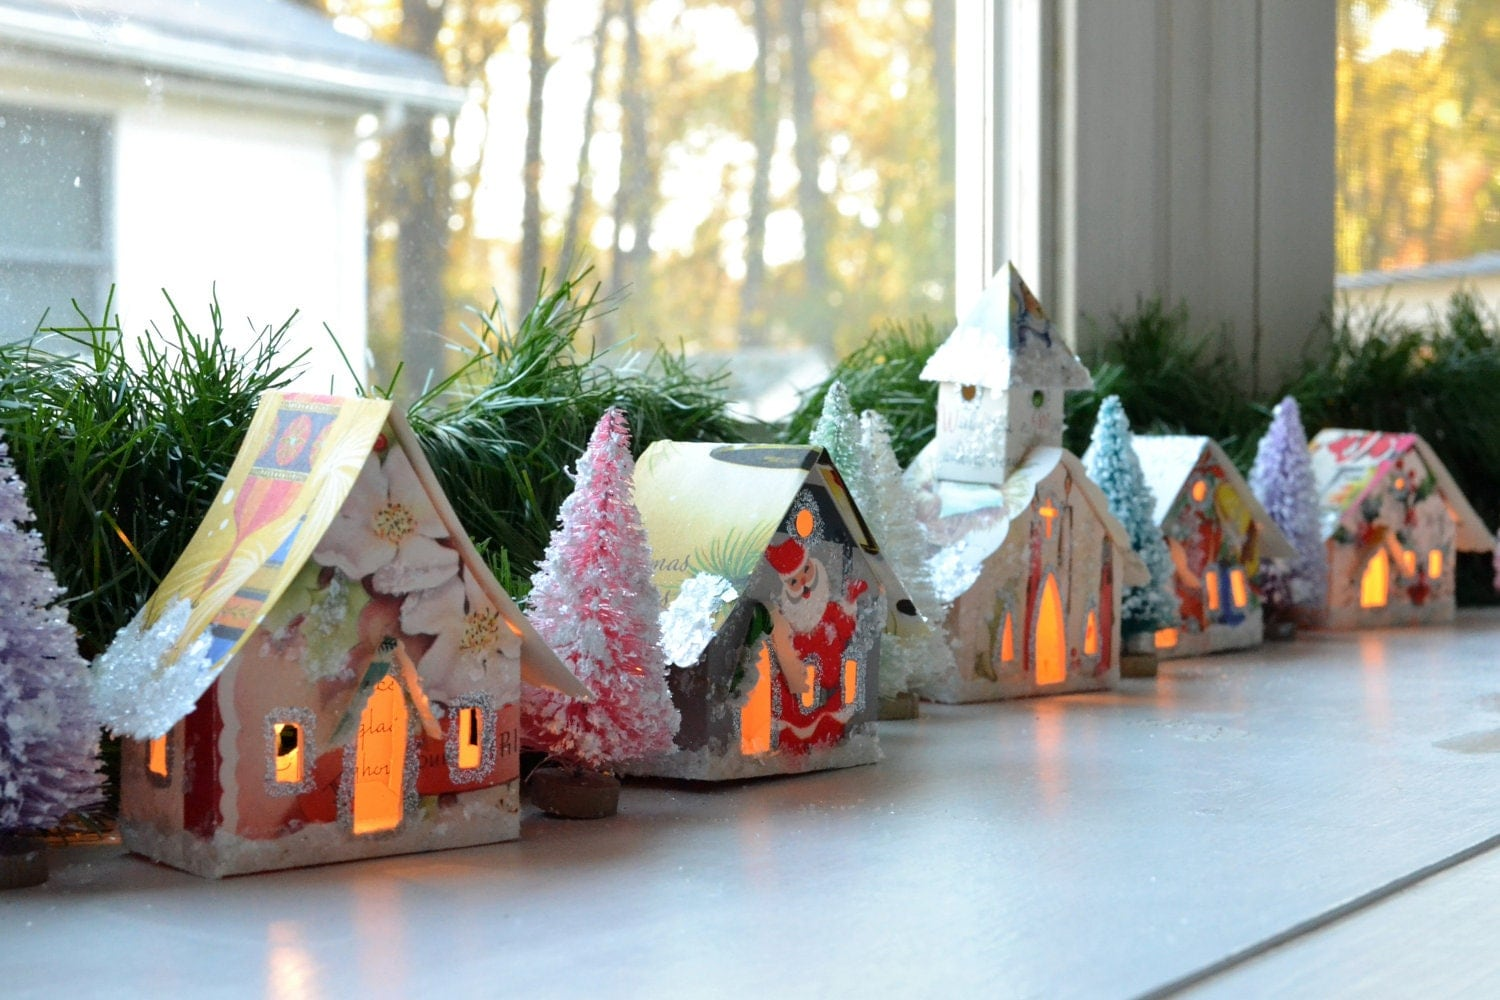 Create Your Own Putz Glitter House Village By Shescrafty121